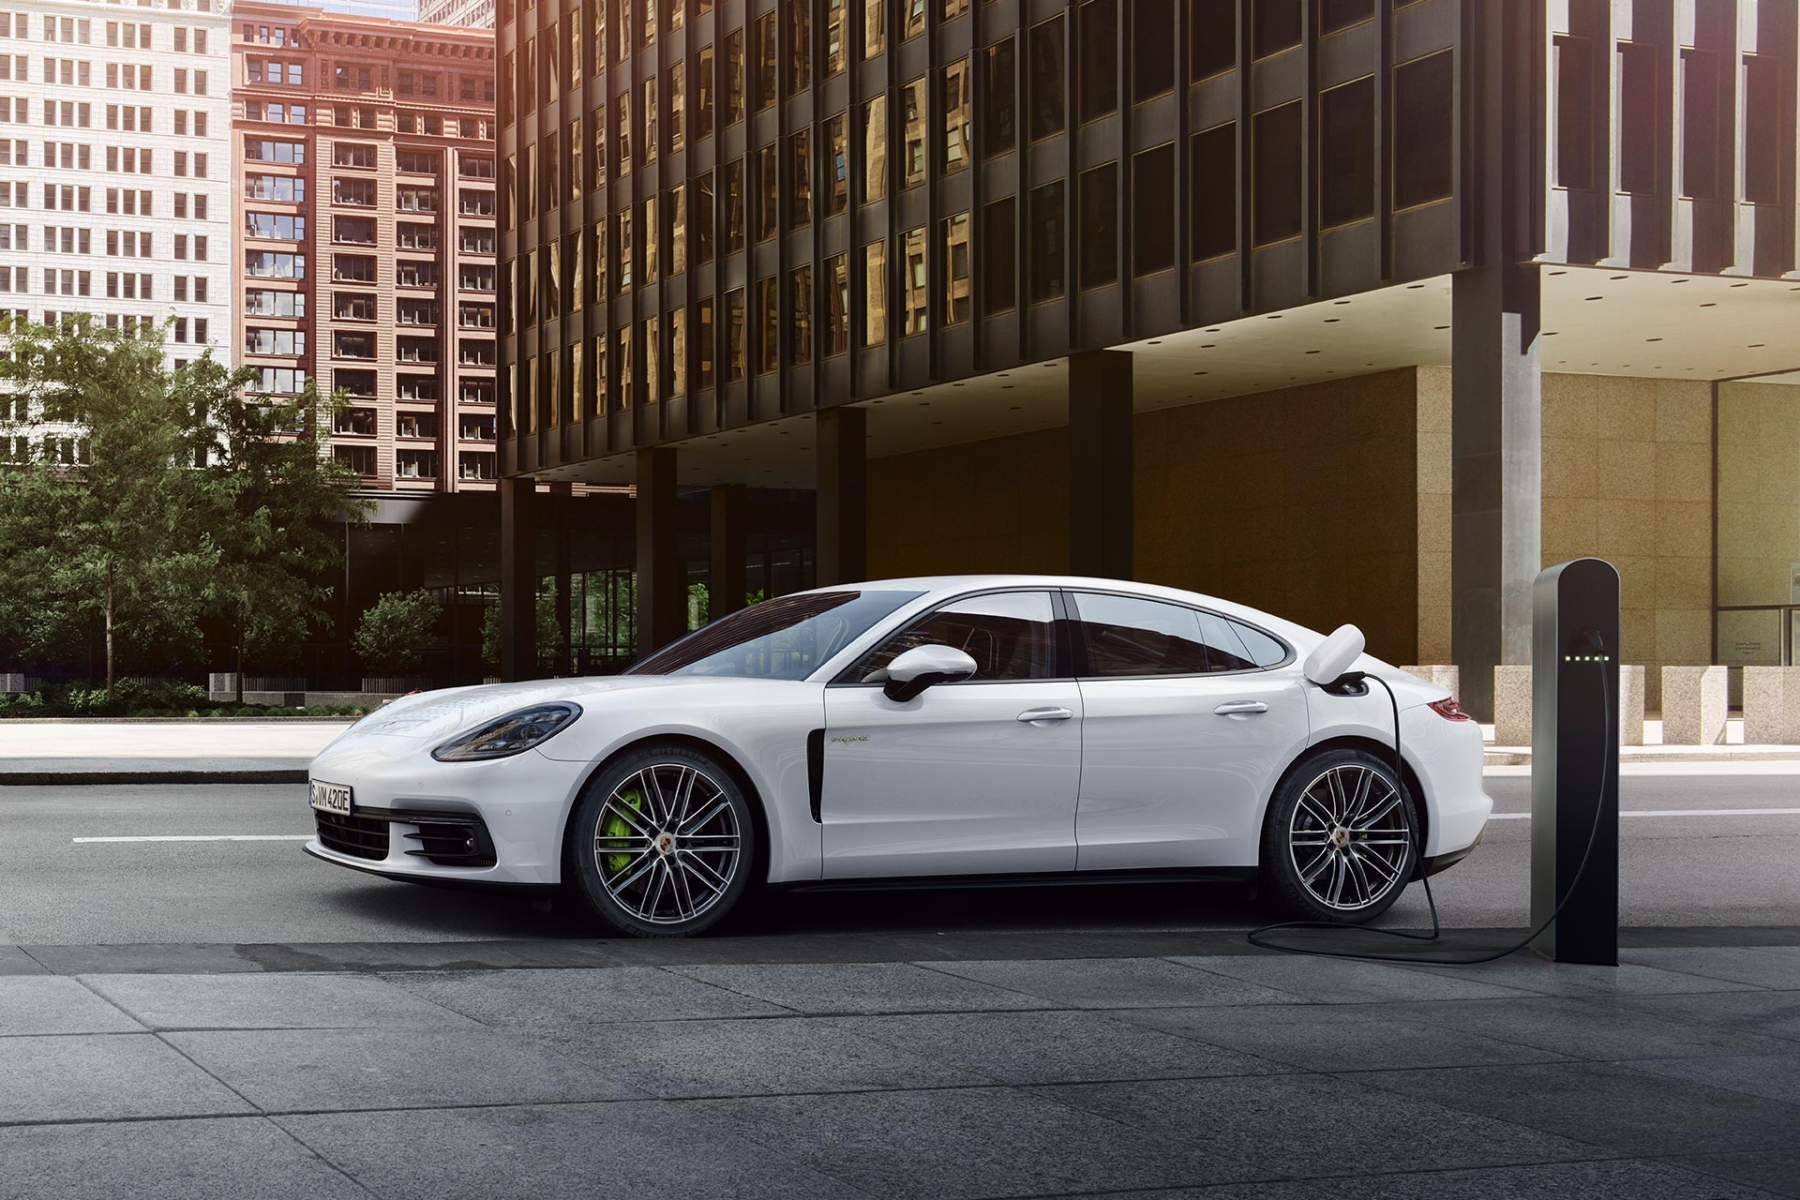 Introducing the All-New 2018 Porsche Panamera E-Hybrid: More Performance,  More Efficiency | Reeves Import Motorcars